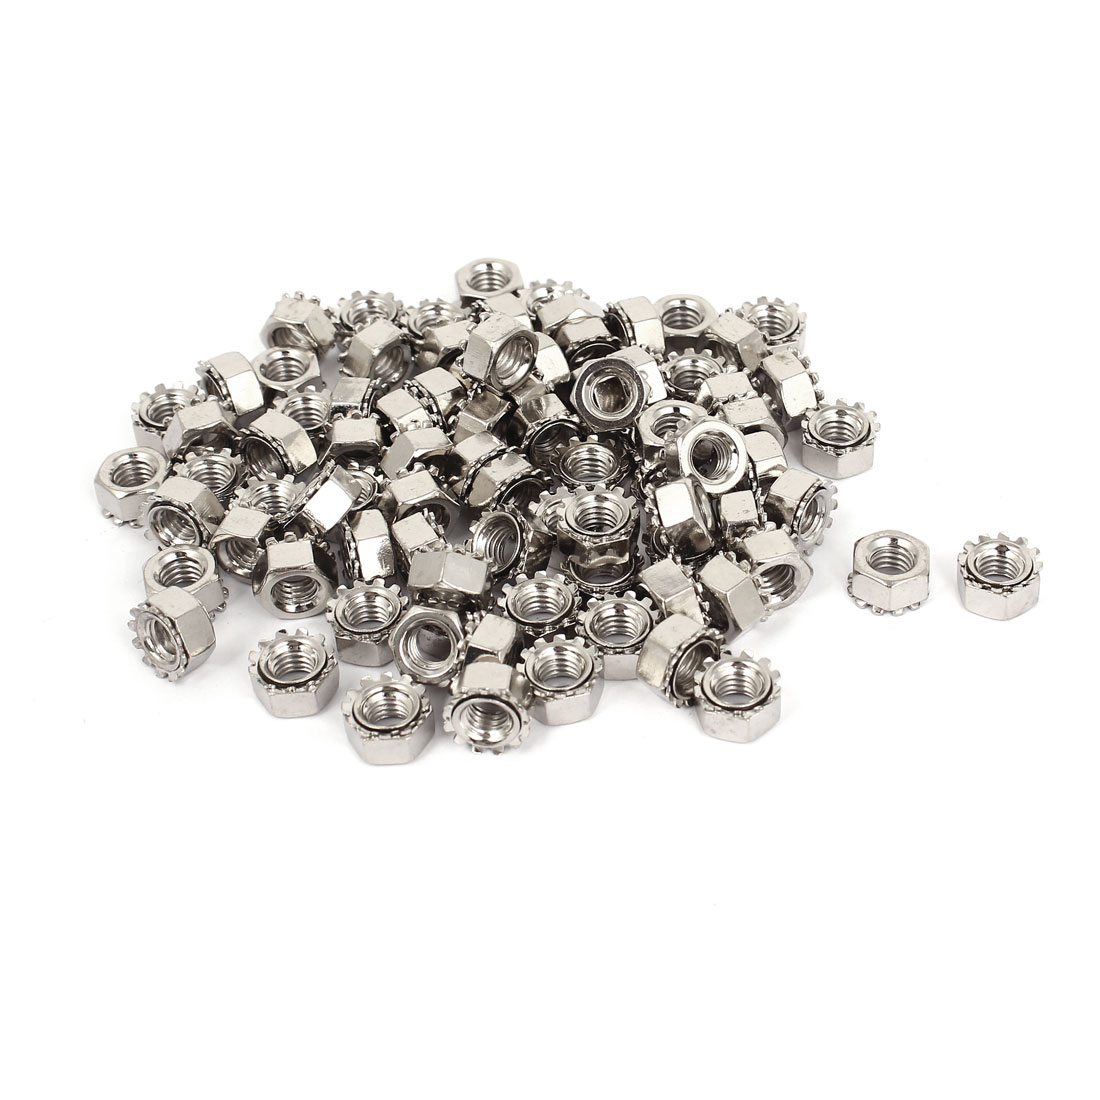 6mm Thread Dia Nickel Plated External Tooth K Lock Kep Nut Silver Tone 100Pcs